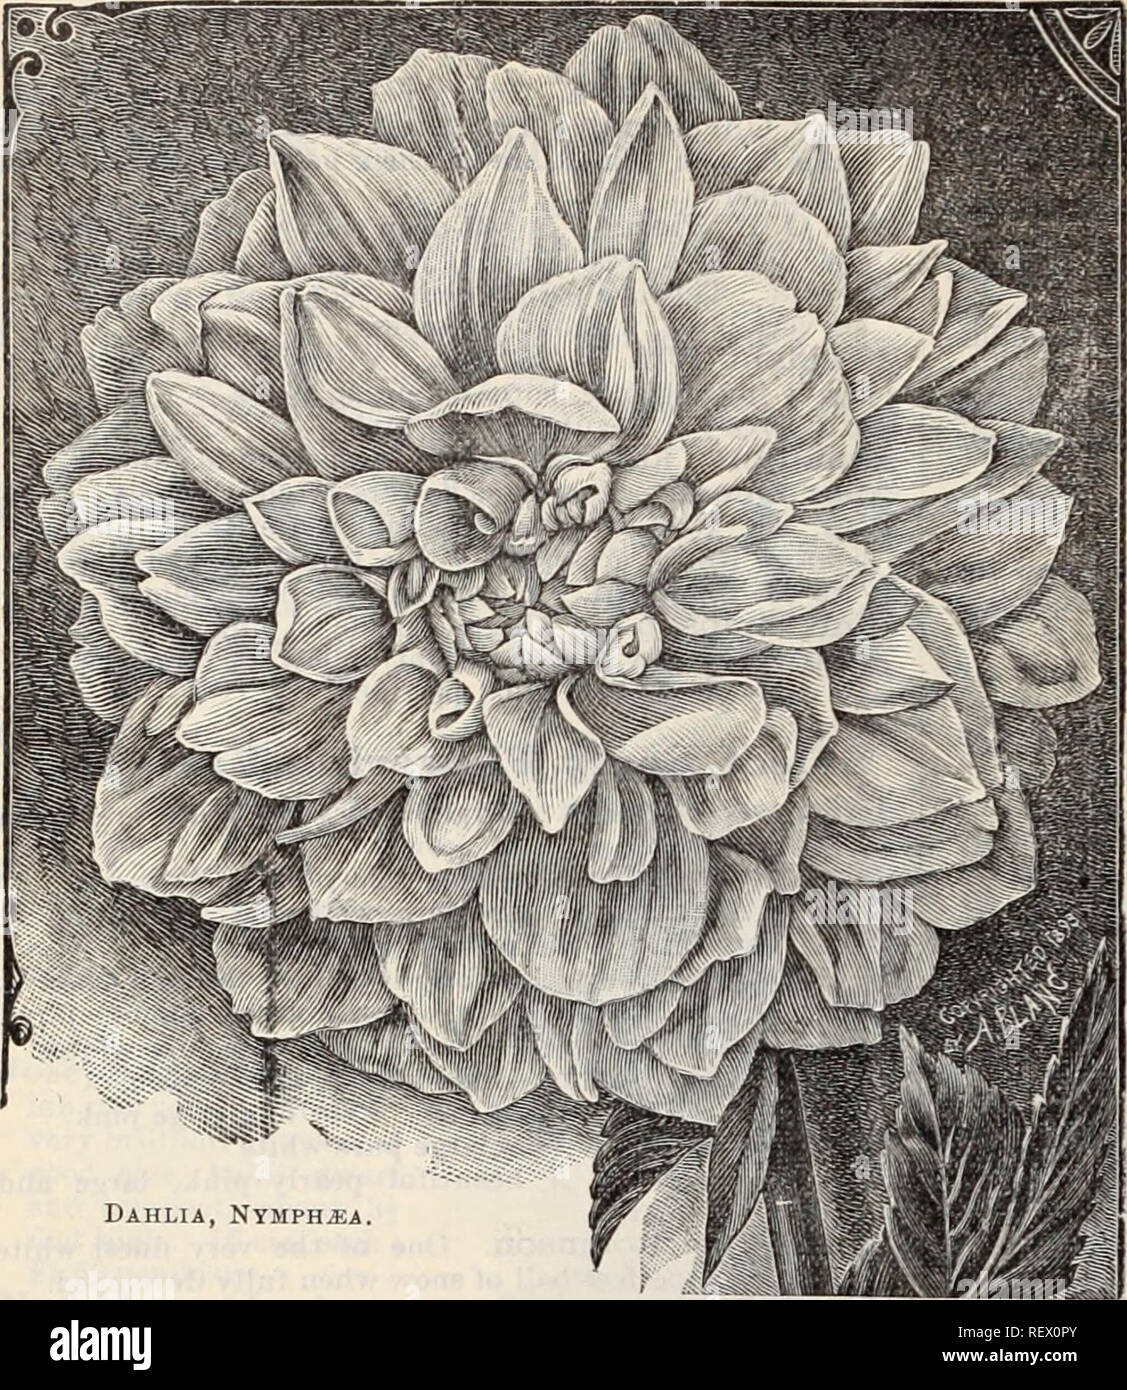 . Dreer's wholesale price list / Henry A. Dreer.. Nursery Catalogue. 30 DREER'S WHOLESALE PRICE LIST.. Dahlia, Nymphjsa Eighteen Grand Cactus Dahlias. Celestine. Yellow, suffused with orange, giving a rich golden yellow effect. Countess of Pembroke. Pure delicate rosy lavender, flowers of raedium size, of perfect form and extremely profuse bloomer. Empress of India. Deep rich maroon, a fine flower. Q-ilt Edge. Entirely distinct from all others, each petal having a golden yellow edge with white centre. Kynerith. Brilliant vermilion, shading to a lighter shade at base of petals. Lemon Giant. Pur - Stock Image